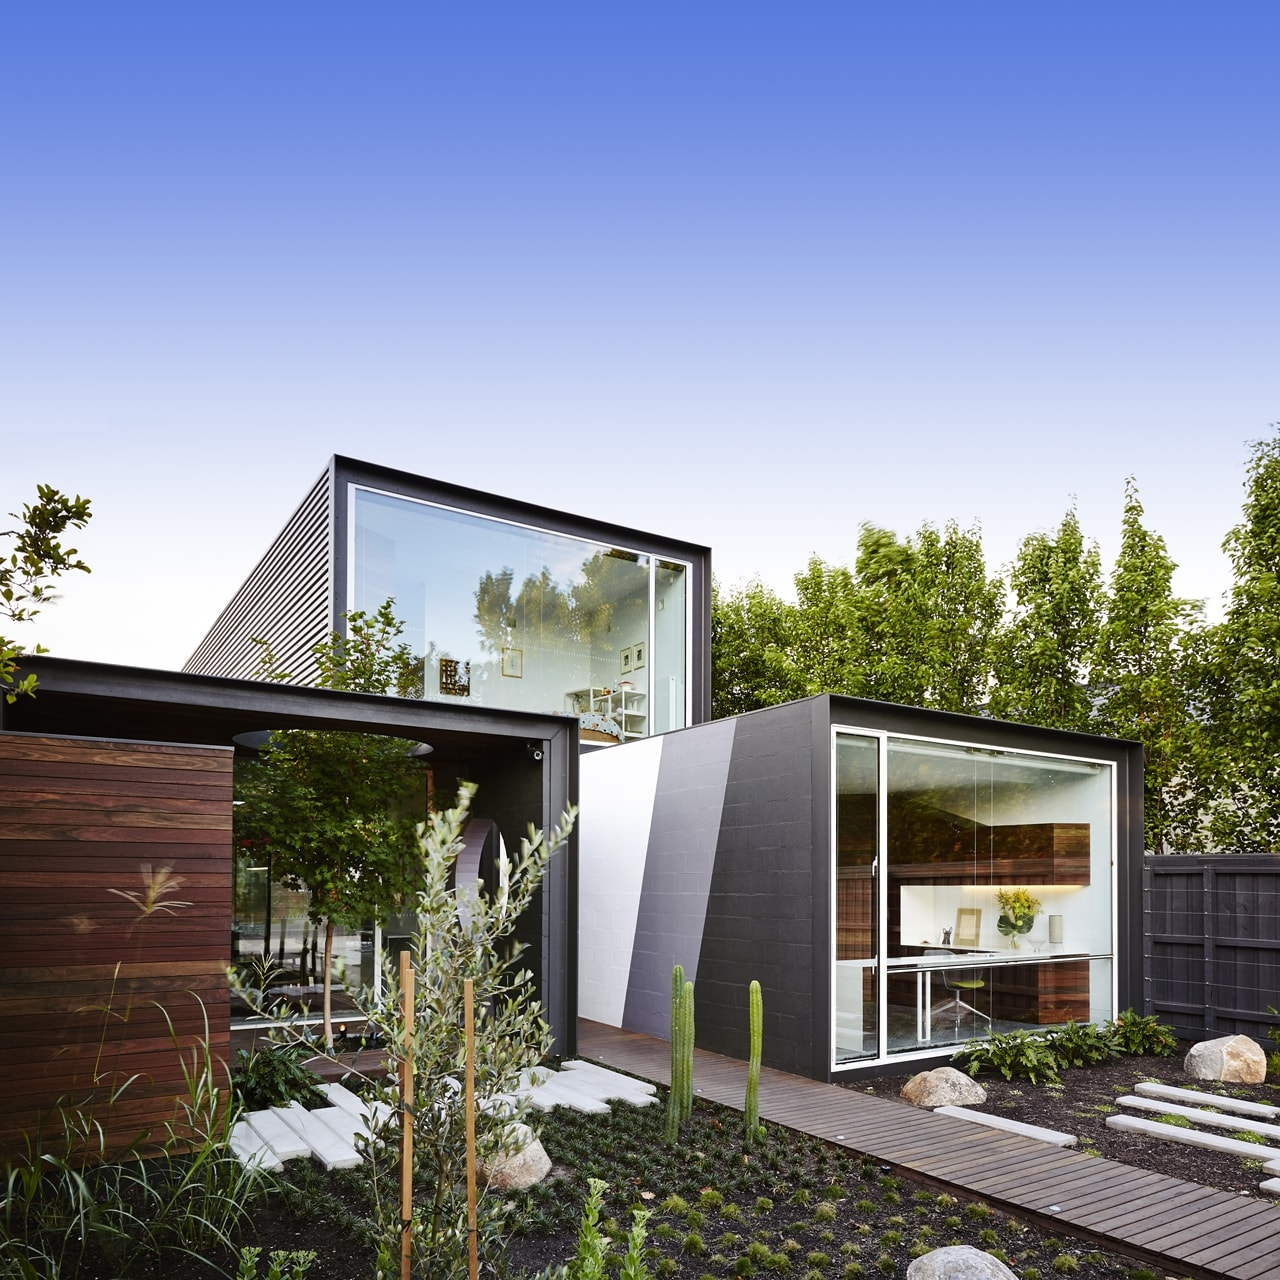 Facade on open house by Austin Maynard Architects